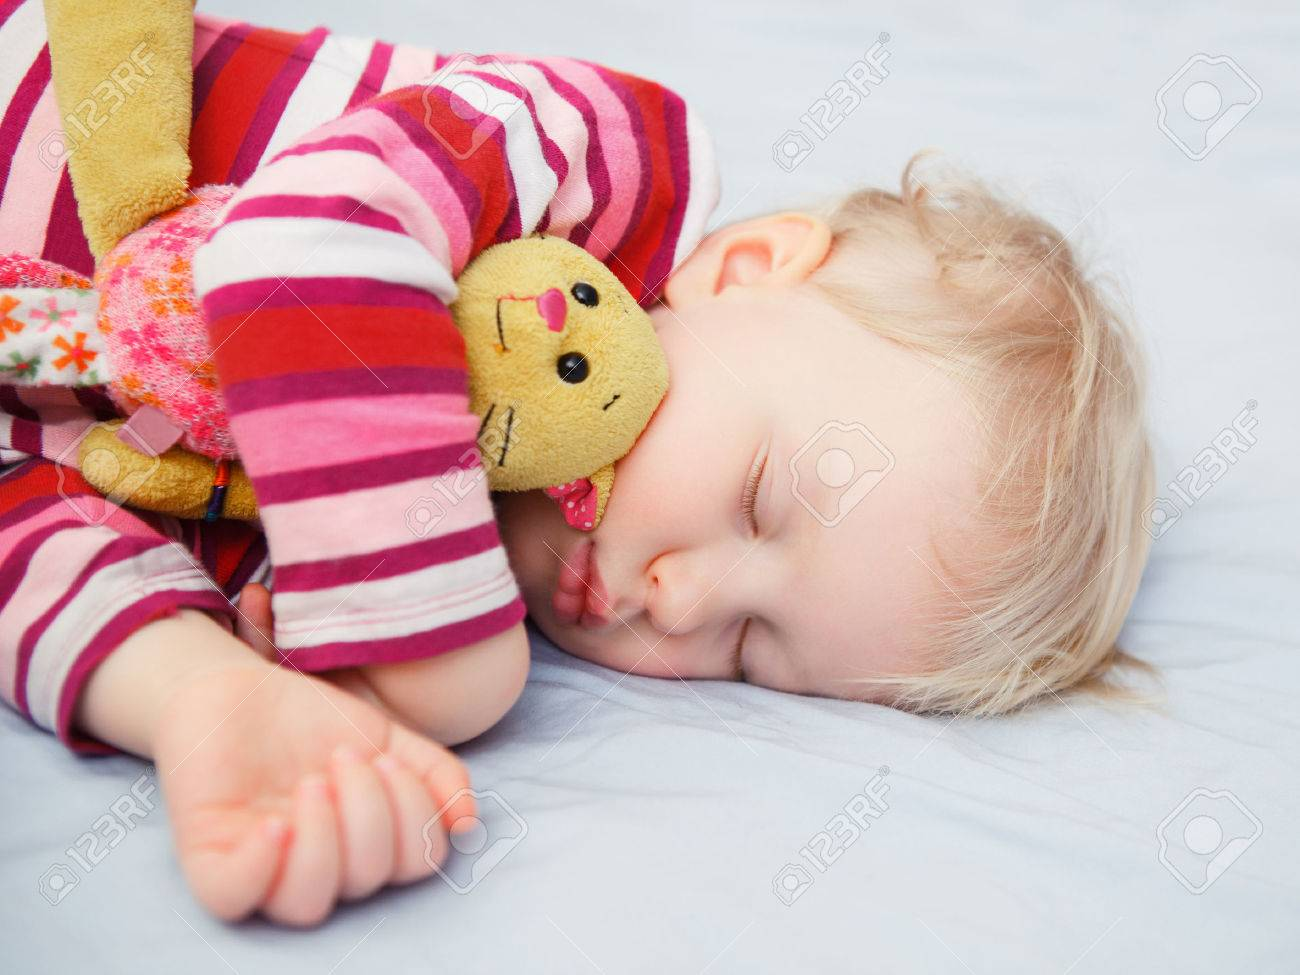 Closeup portrait of a cute adorable white blond Caucasian baby child toddler sleeping dreaming, lying on a bed with comforter toy, indoor - 36810336